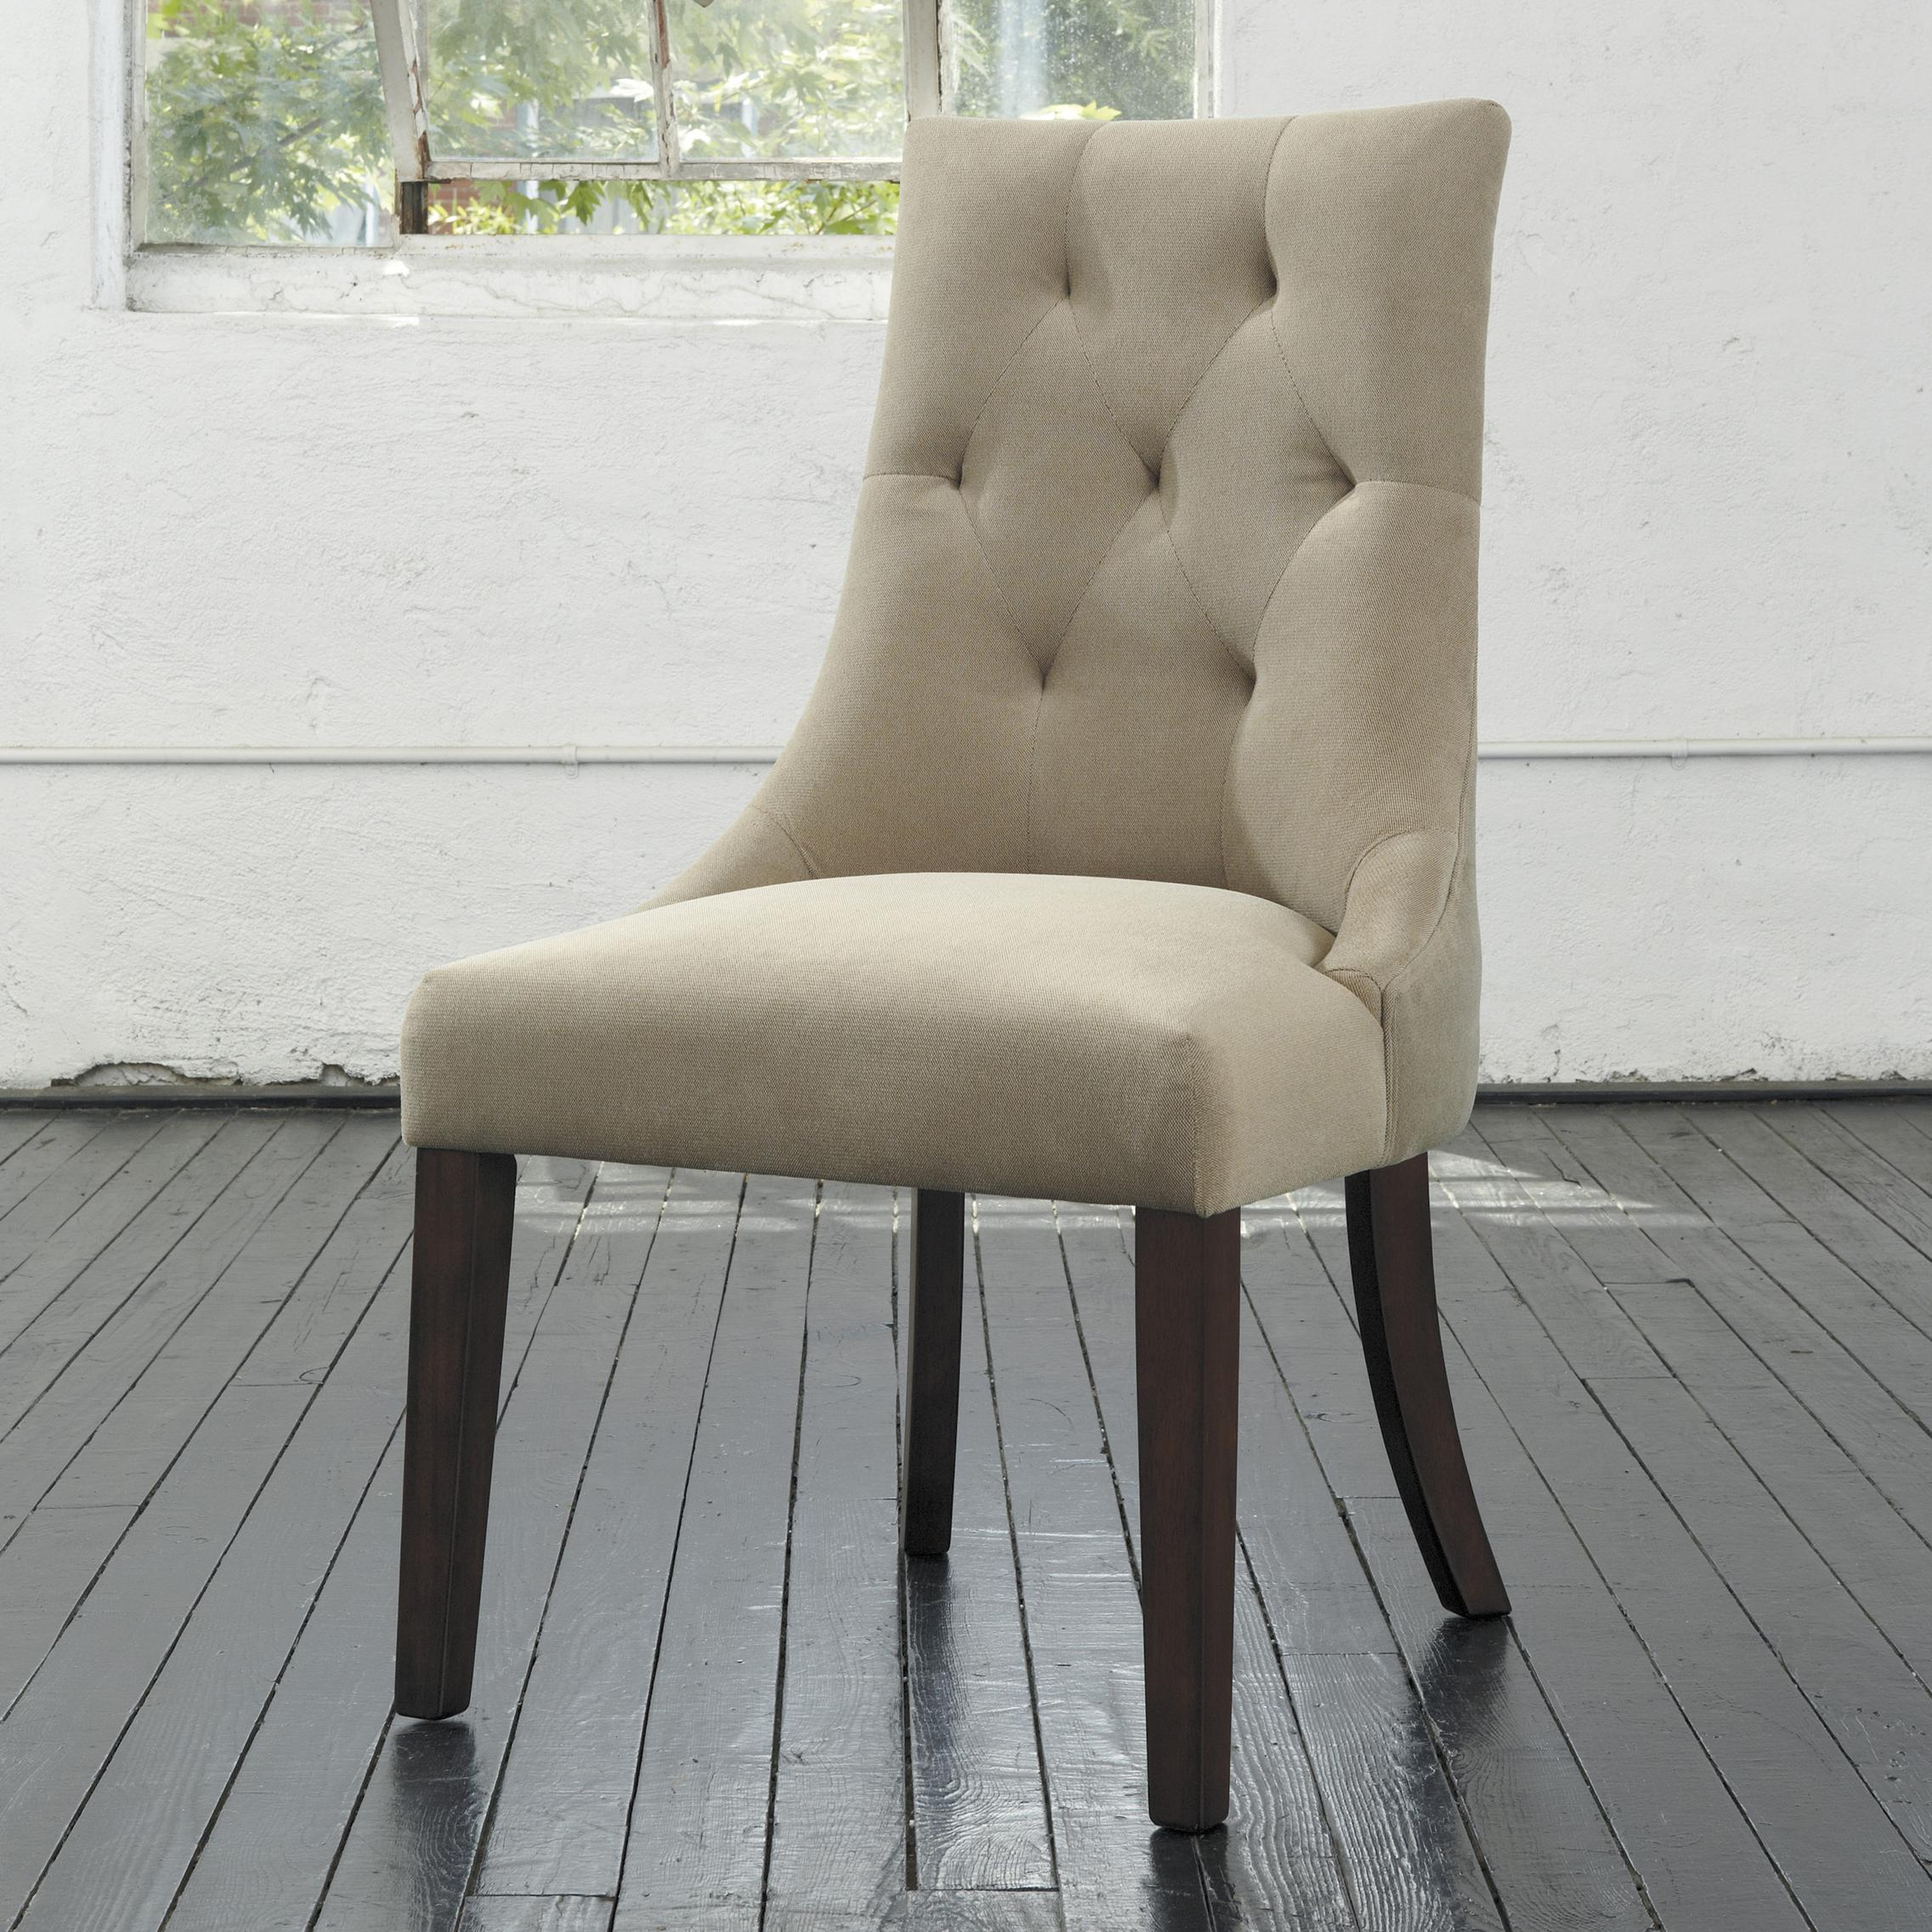 Ashley Chairs Mestler Dining Upholstered Side Chair With Button Tufting By Signature Design By Ashley At Furniture Fair North Carolina